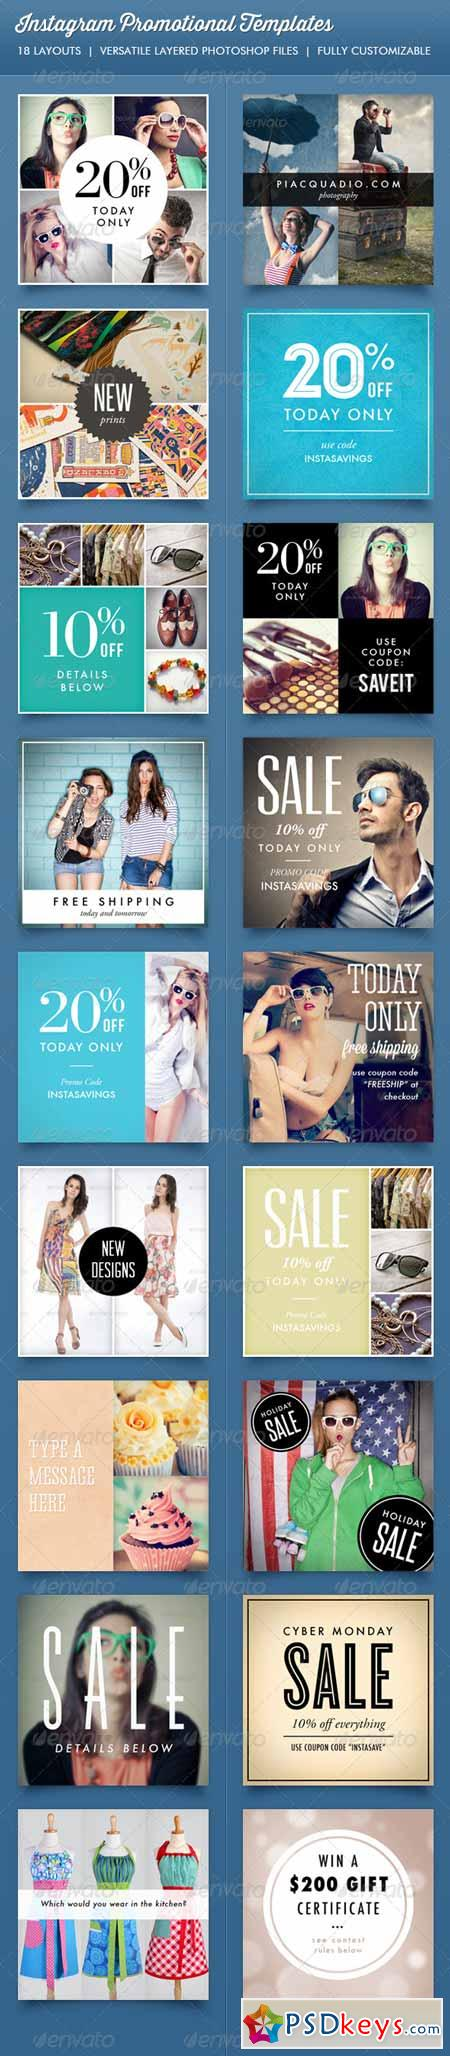 Instagram Promotional Template 6674714